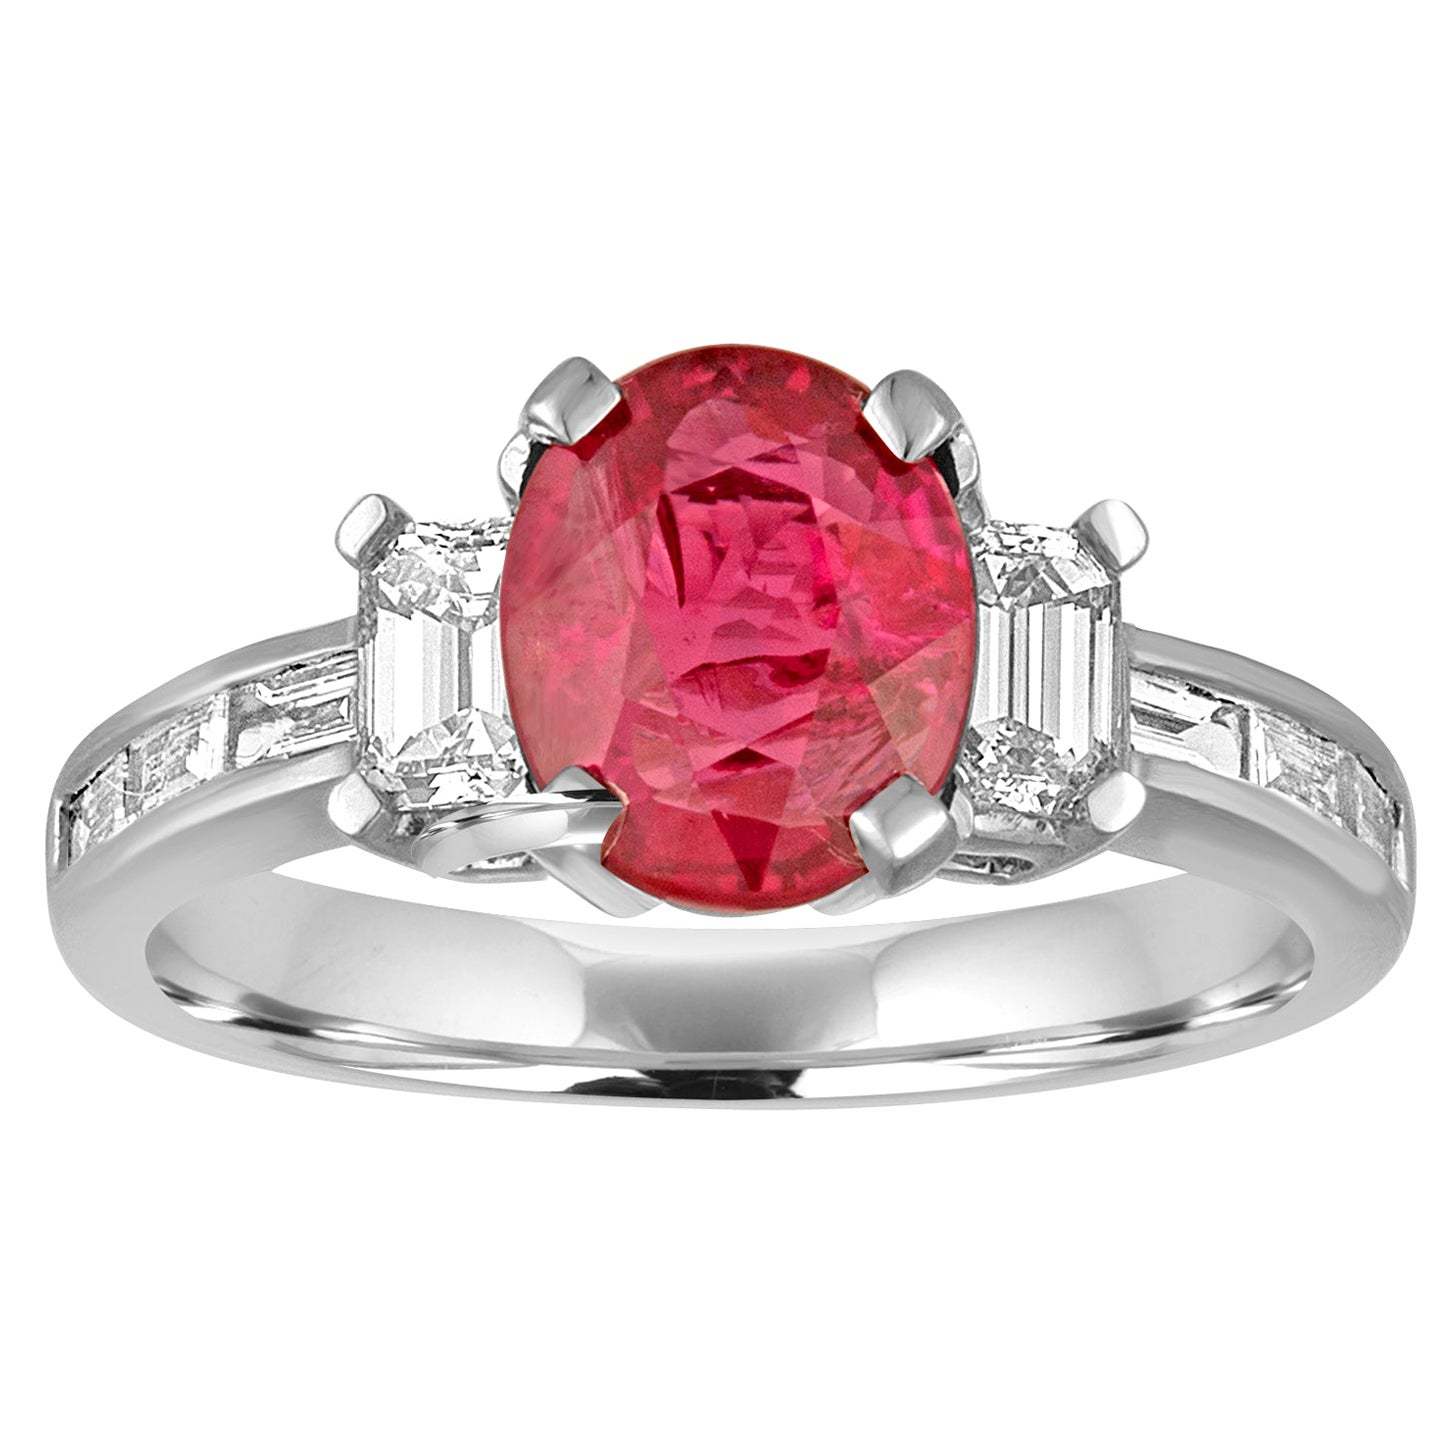 Certified No Heat 2.01 Carat Oval Ruby Diamond Three-Stone Gold Ring